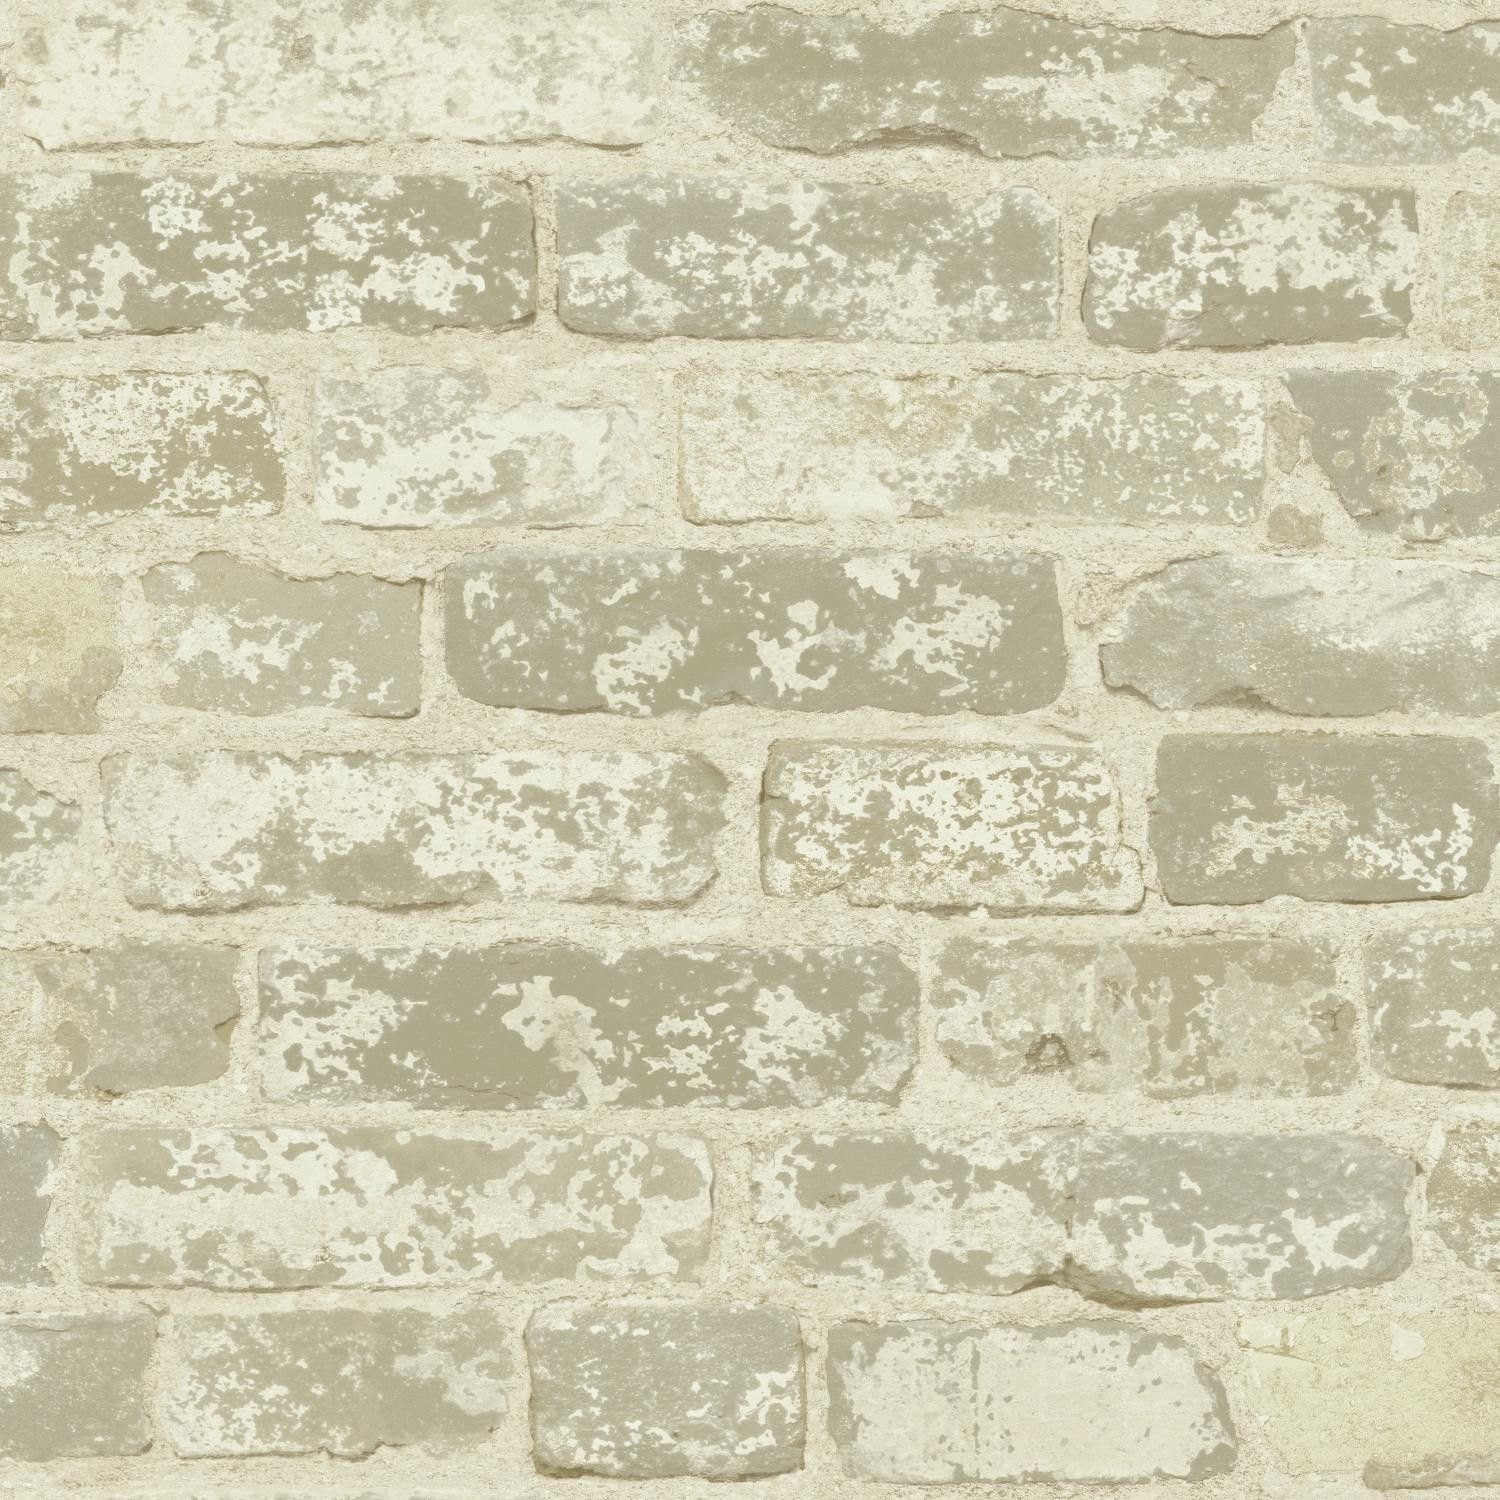 Dress up walls with textured paintable wallpaper called anaglypta - Urban Chic Up The Wall 33 X 20 5 Brick Wood Stone Roll